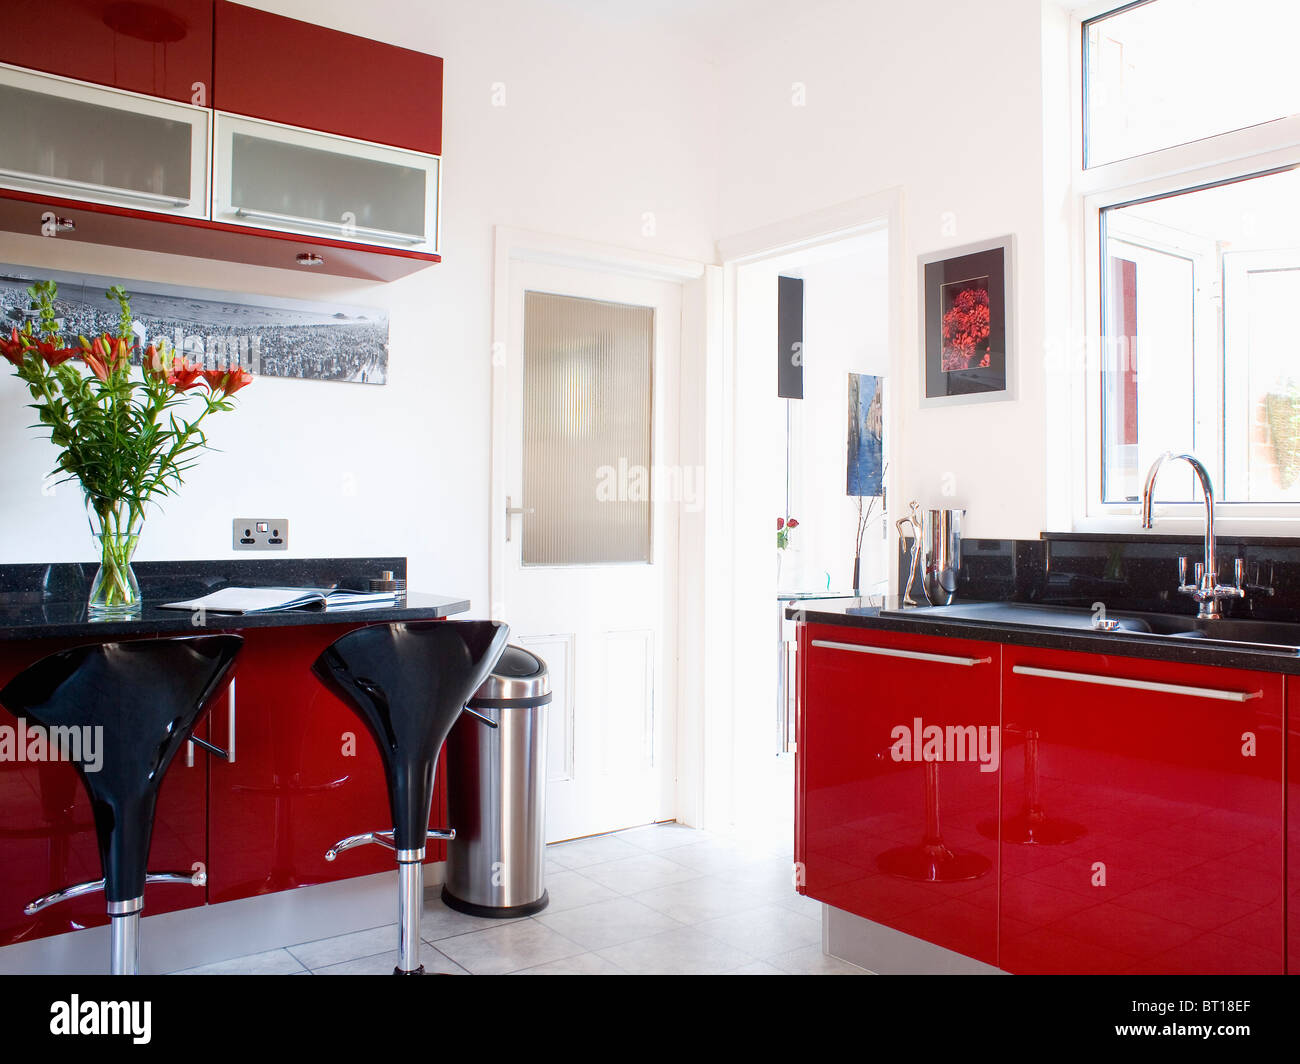 fitted units with red acrylic doors and black granite